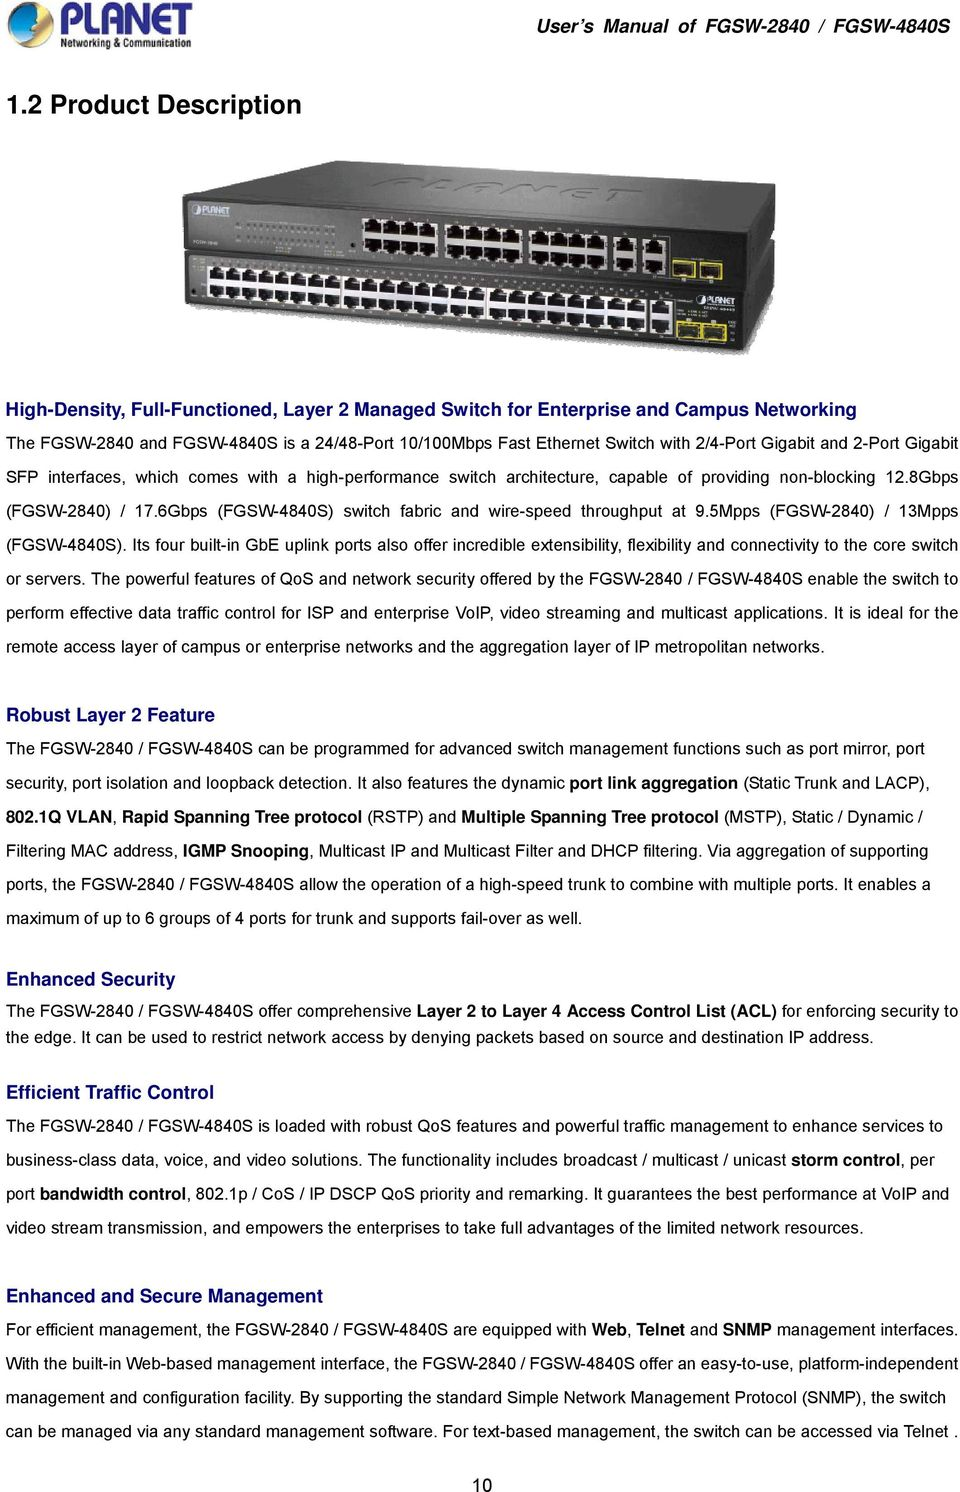 6Gbps (FGSW-4840S) switch fabric and wire-speed throughput at 9.5Mpps (FGSW-2840) / 13Mpps (FGSW-4840S).